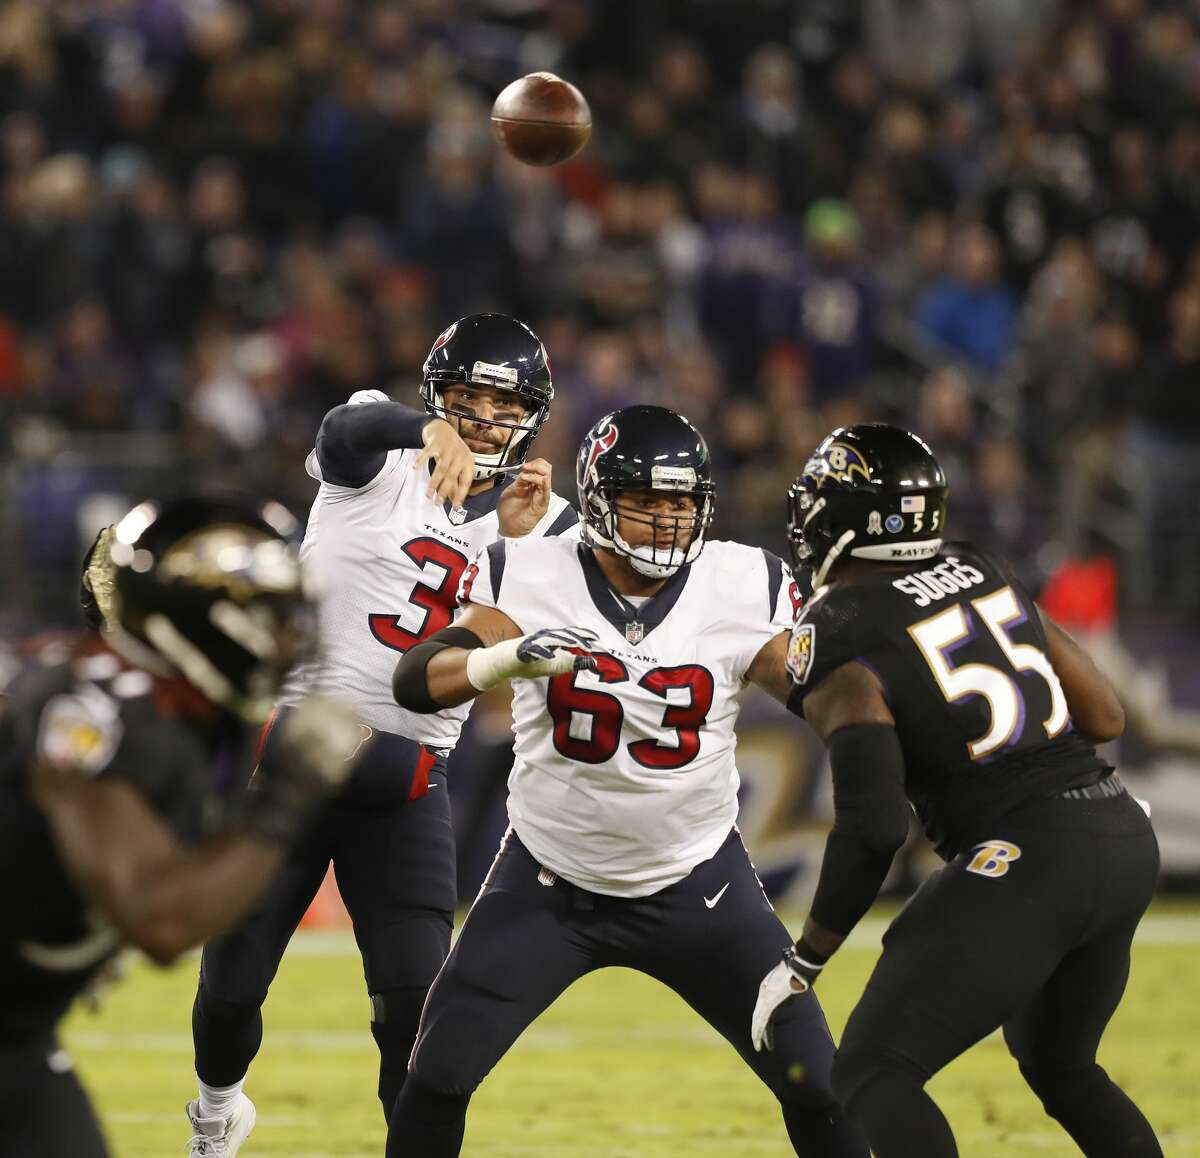 JOHN McCLAIN GRADES THE TEXANS QuarterbackAfter going 5-of-6 for 53 yards on the Texans' opening touchdown drive, Savage was unable to lead another touchdown drive. The red zone offense was awful after the first series. He had two interceptions and a strip sack.Grade: C